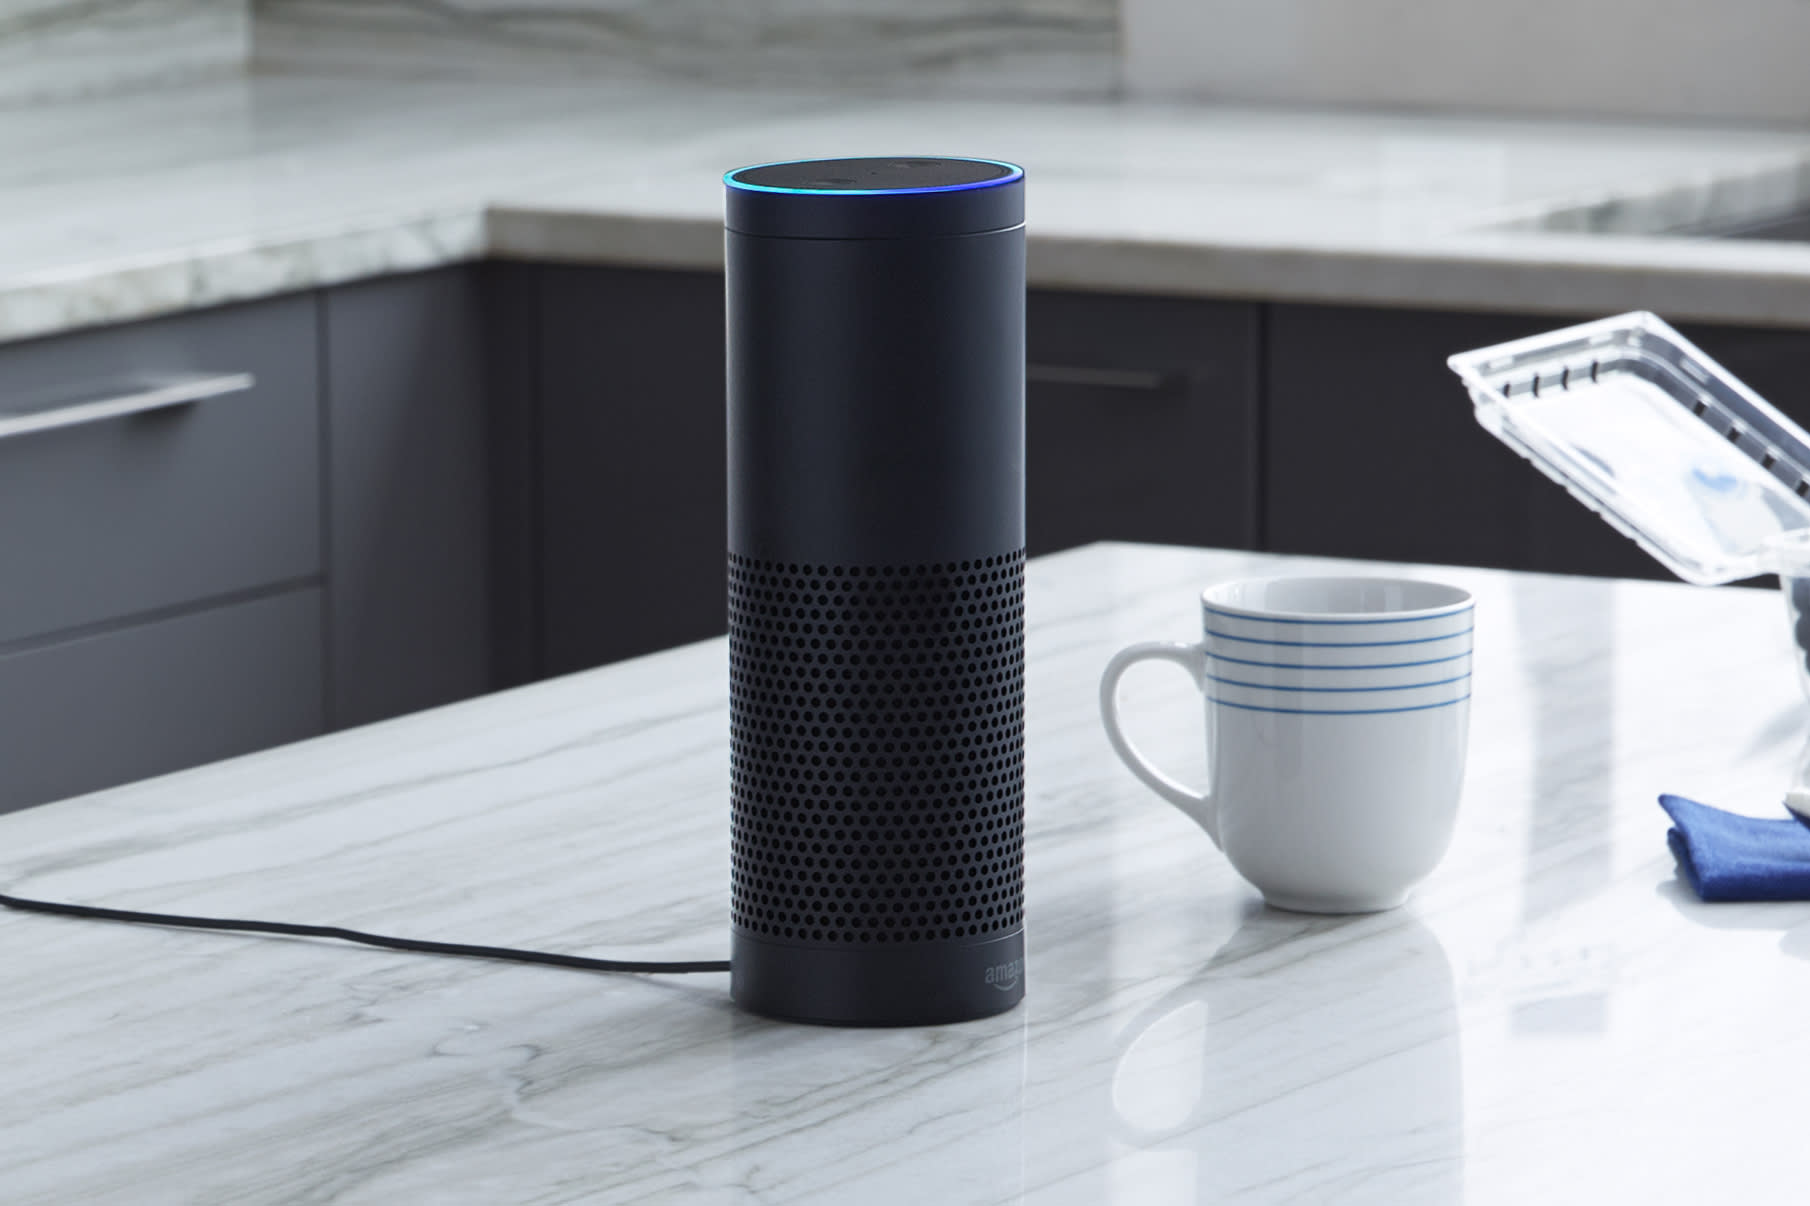 Amazon Echo Alexa virtual assistant